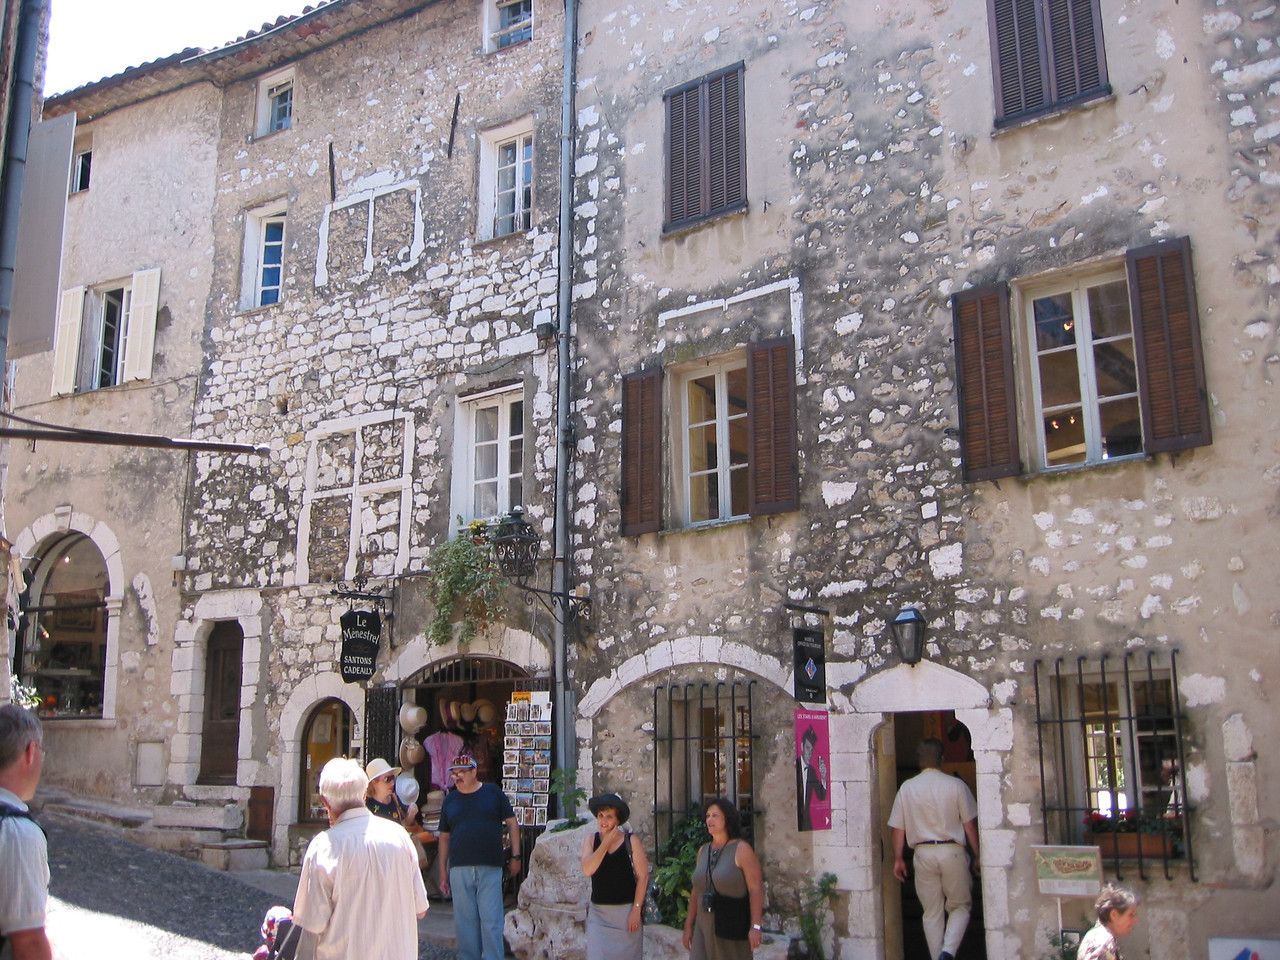 St Paul de Vence, a well-preserved medieval village